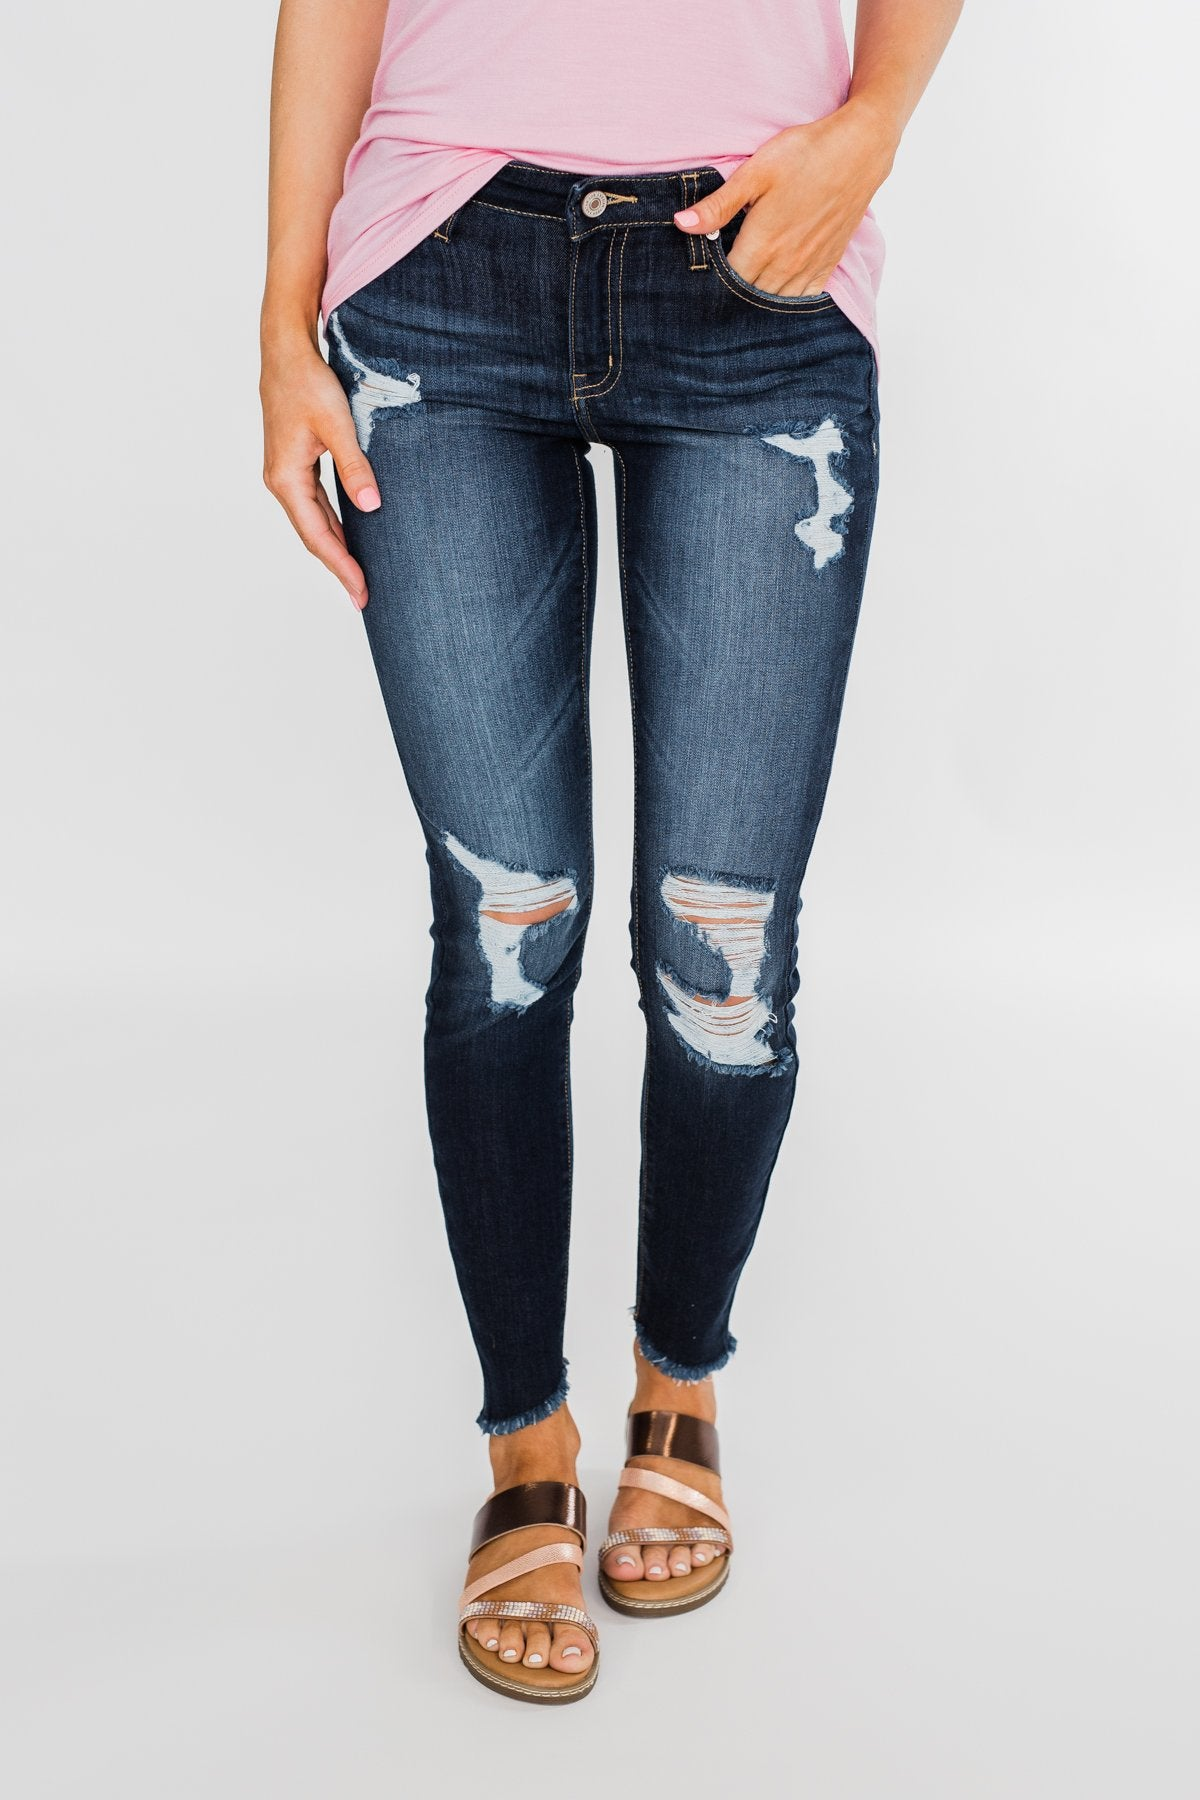 KanCan Callie Jeans- Black Distressed